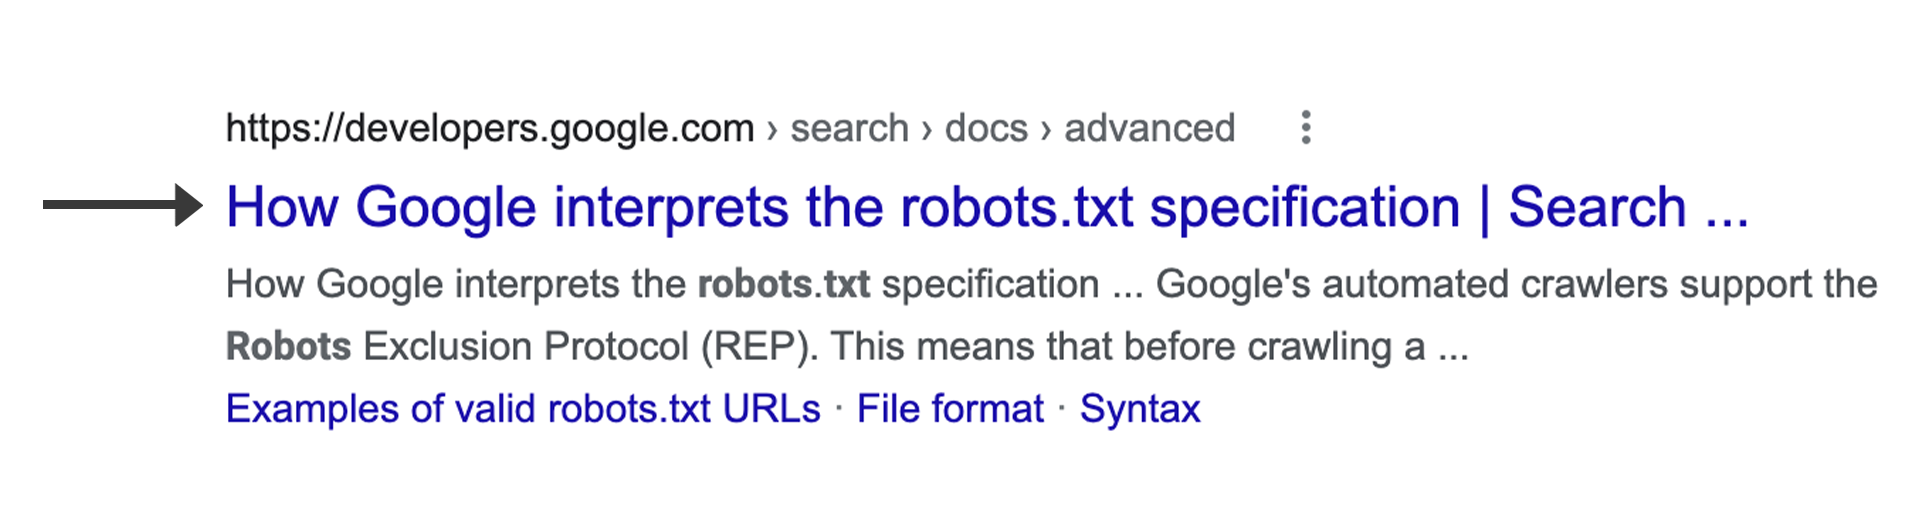 A title link in a web result in Google Search